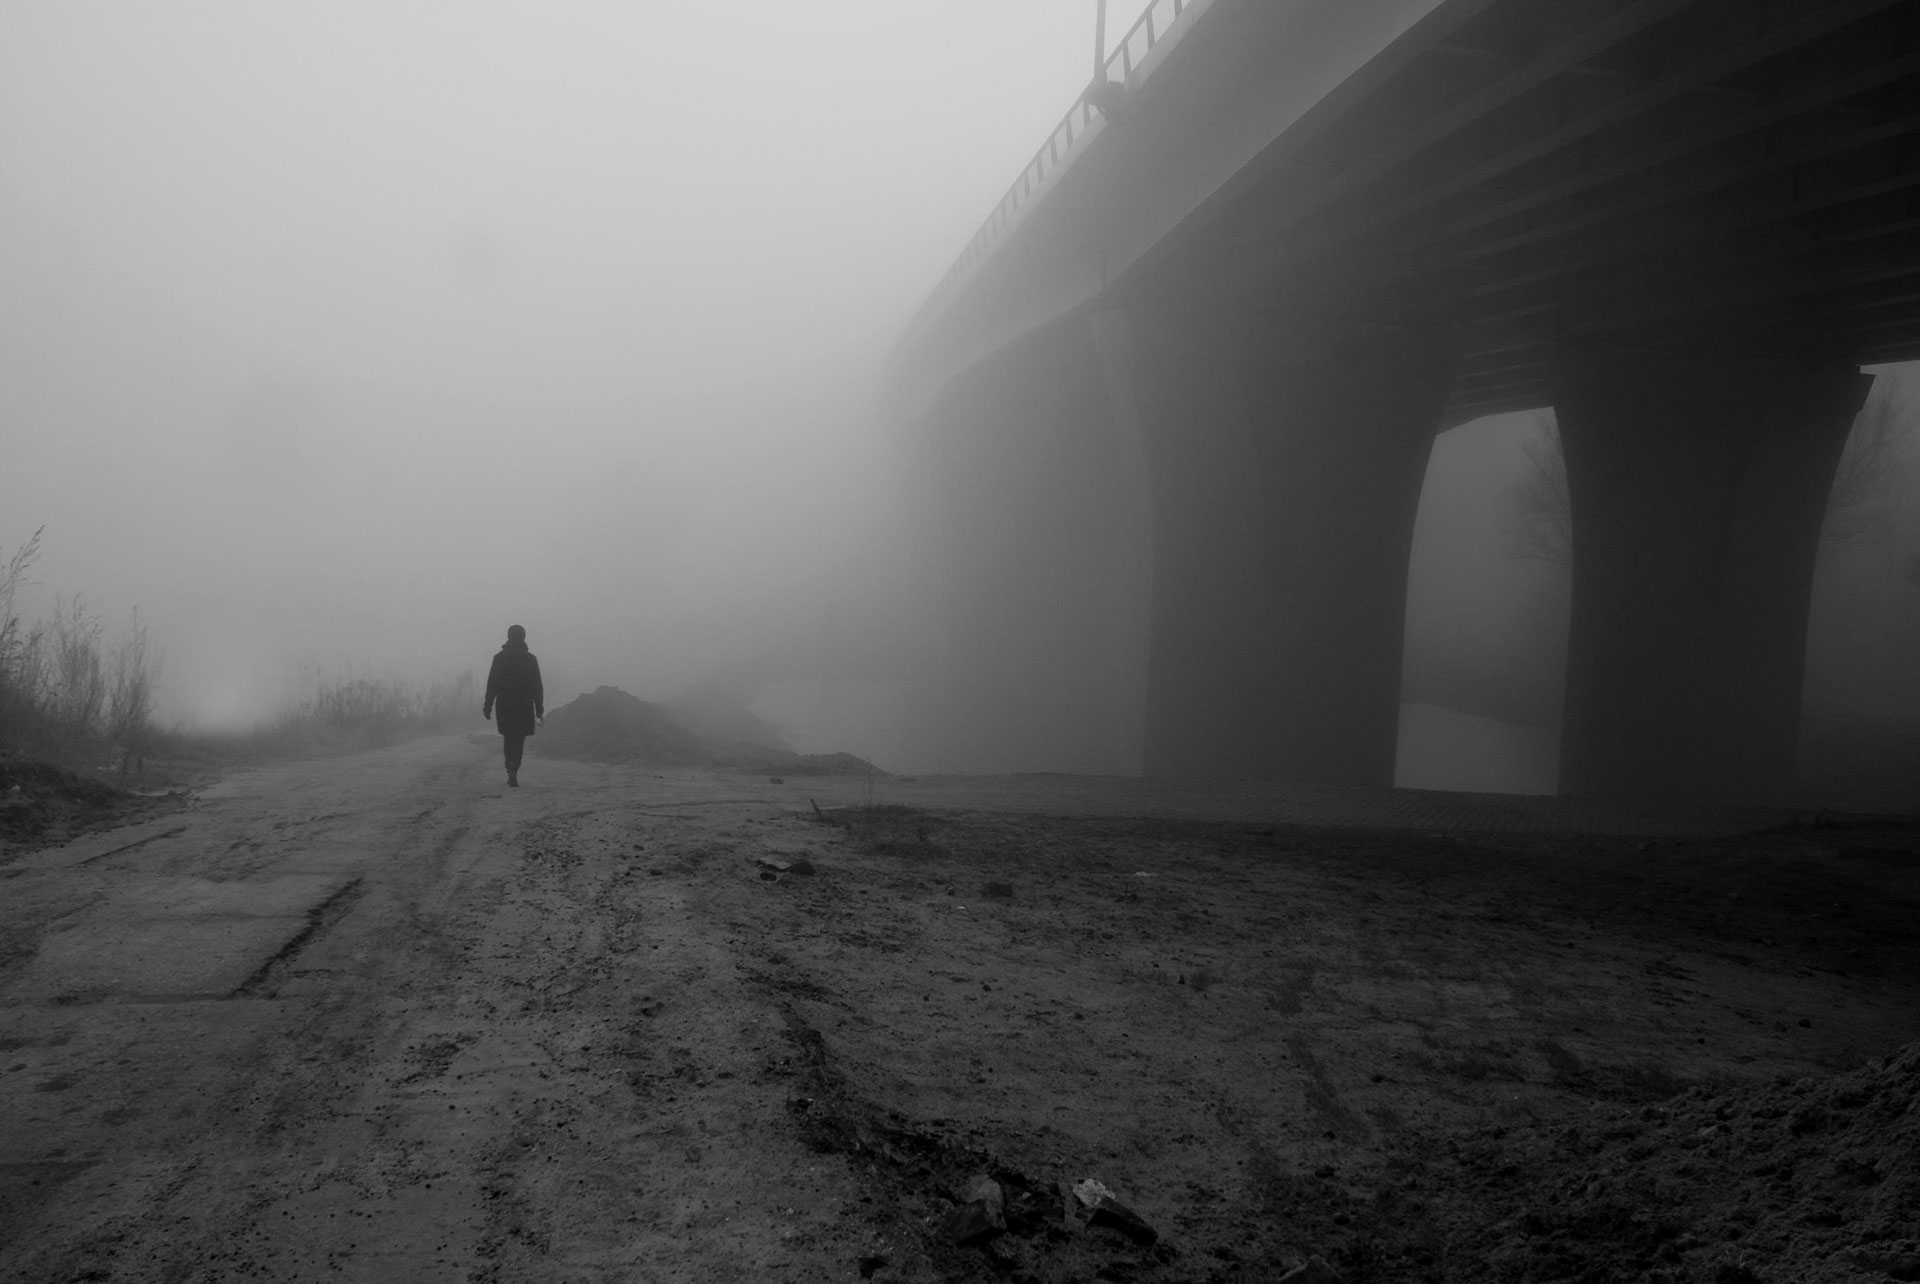 Digital Photography: Bridge in the Fog